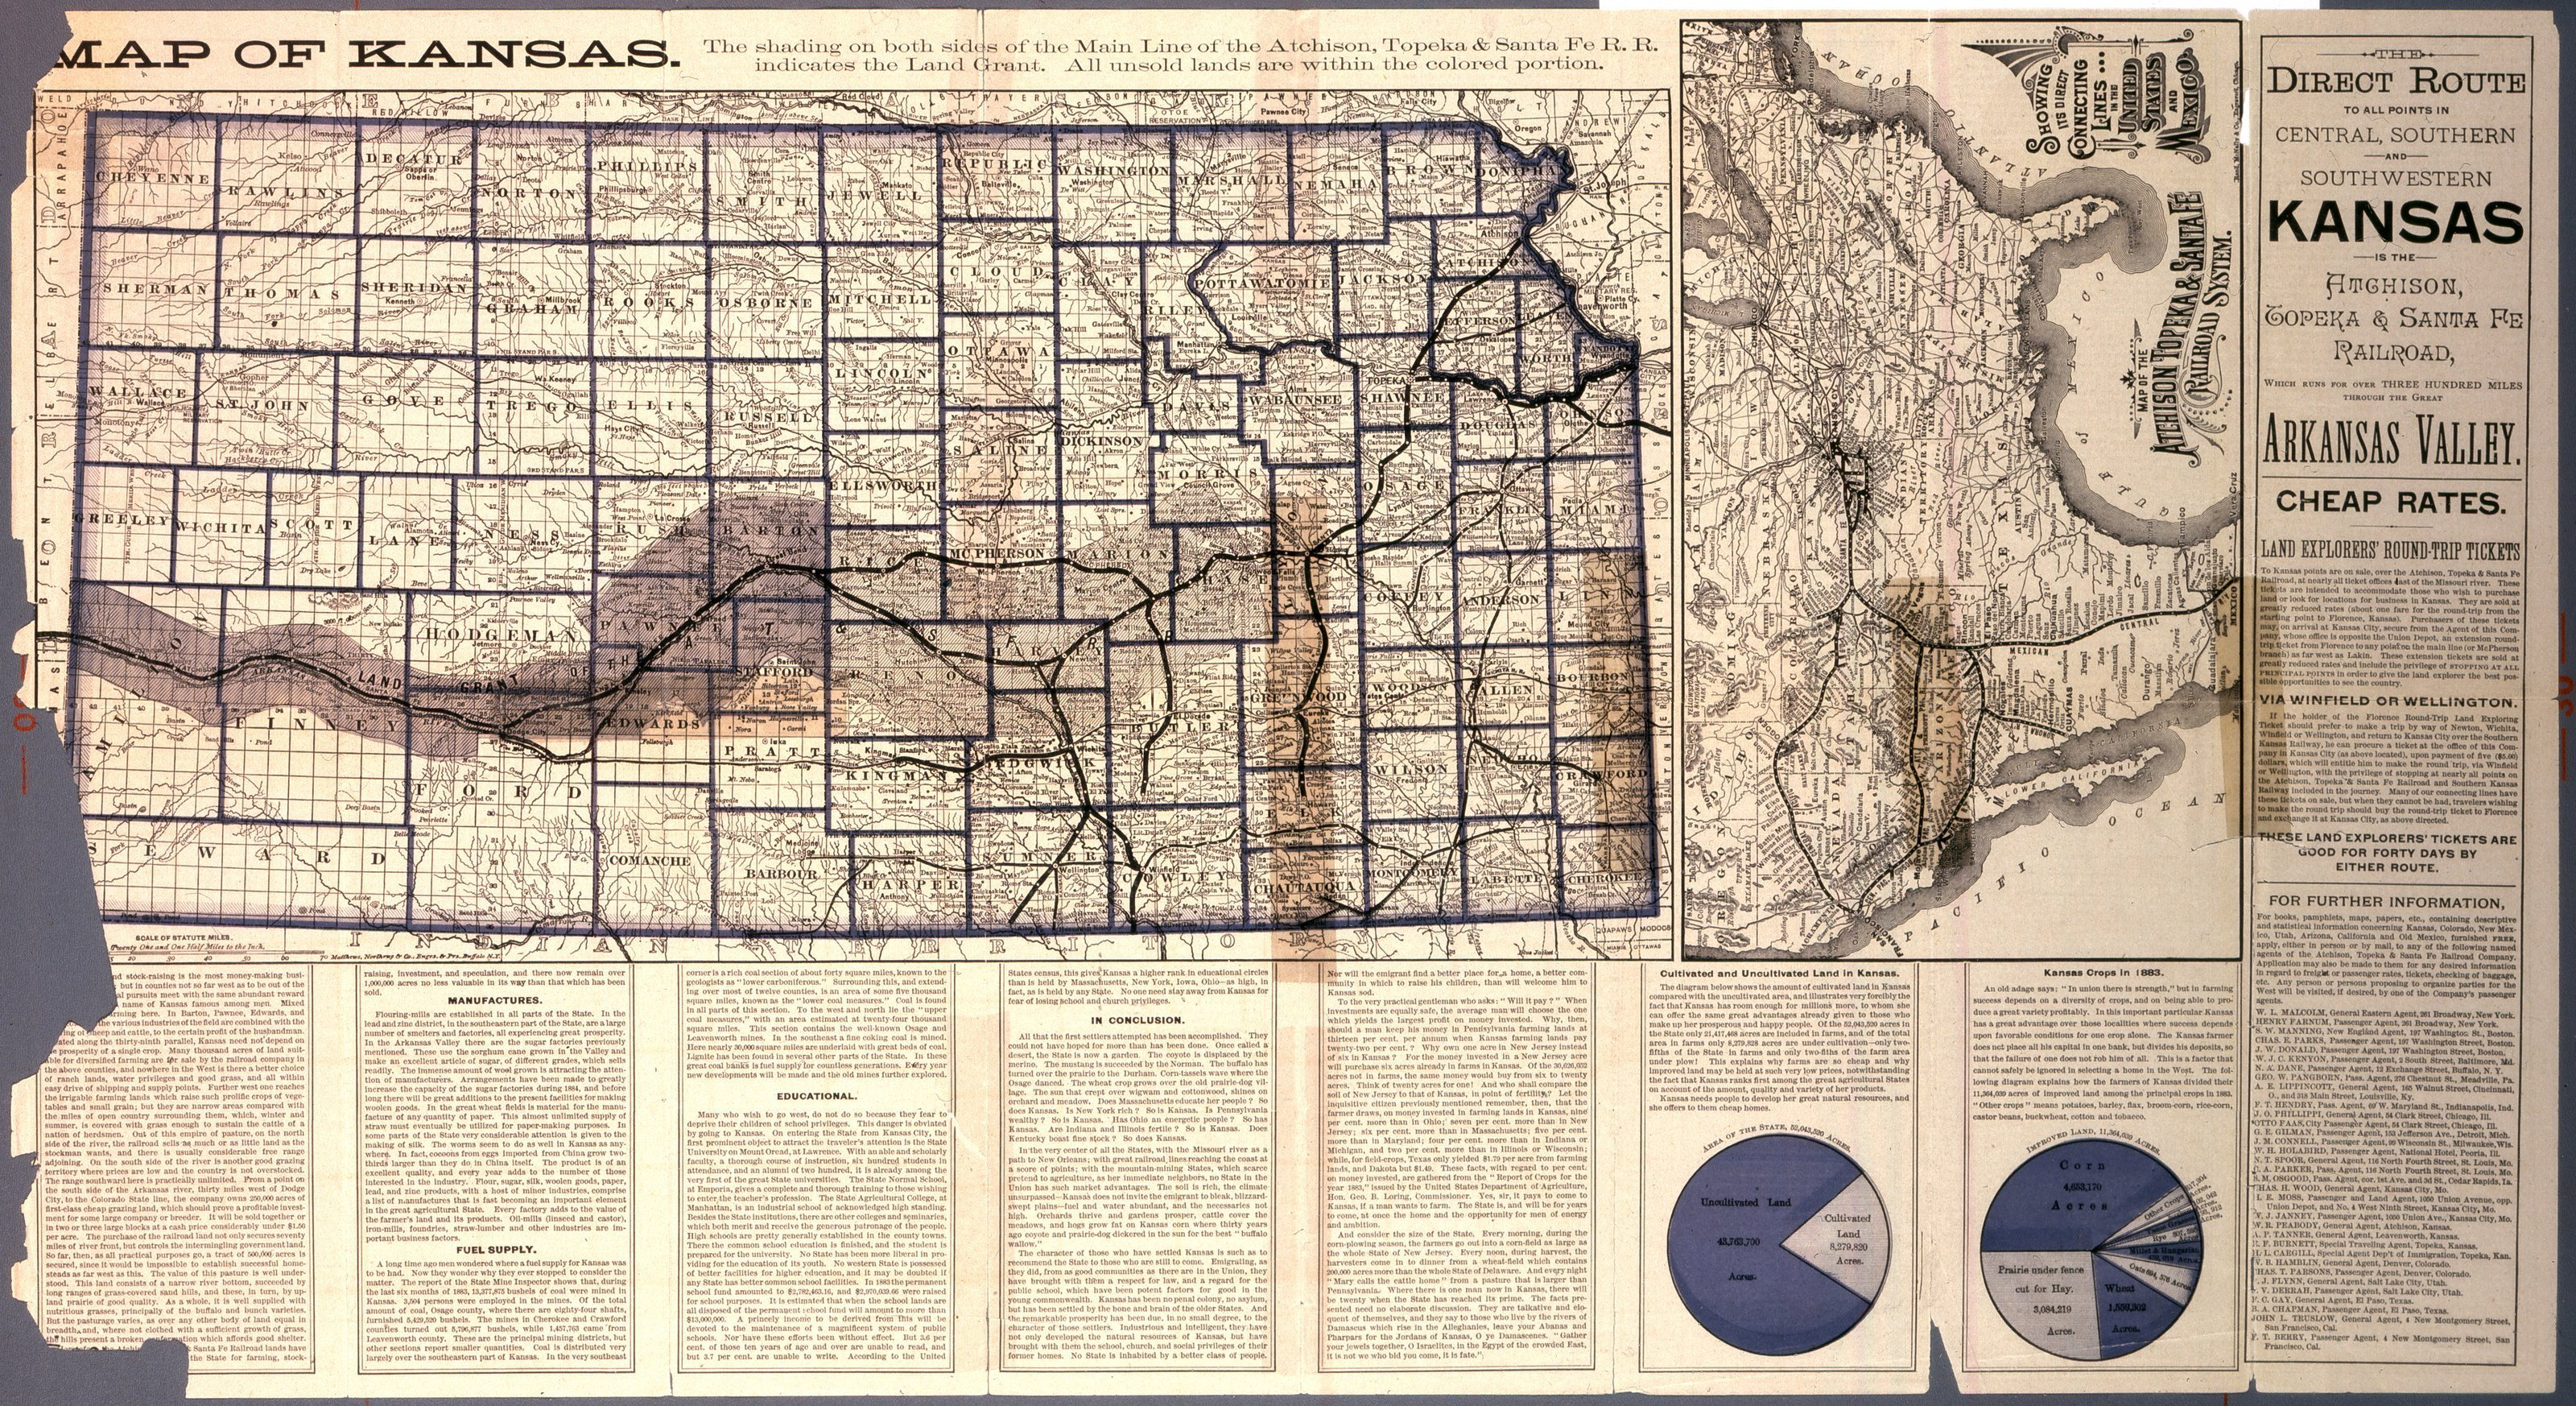 Map Of Kansas The Direct Route To All Points In Central Southern - Atchinson topeka and santa ferailroad on the us map